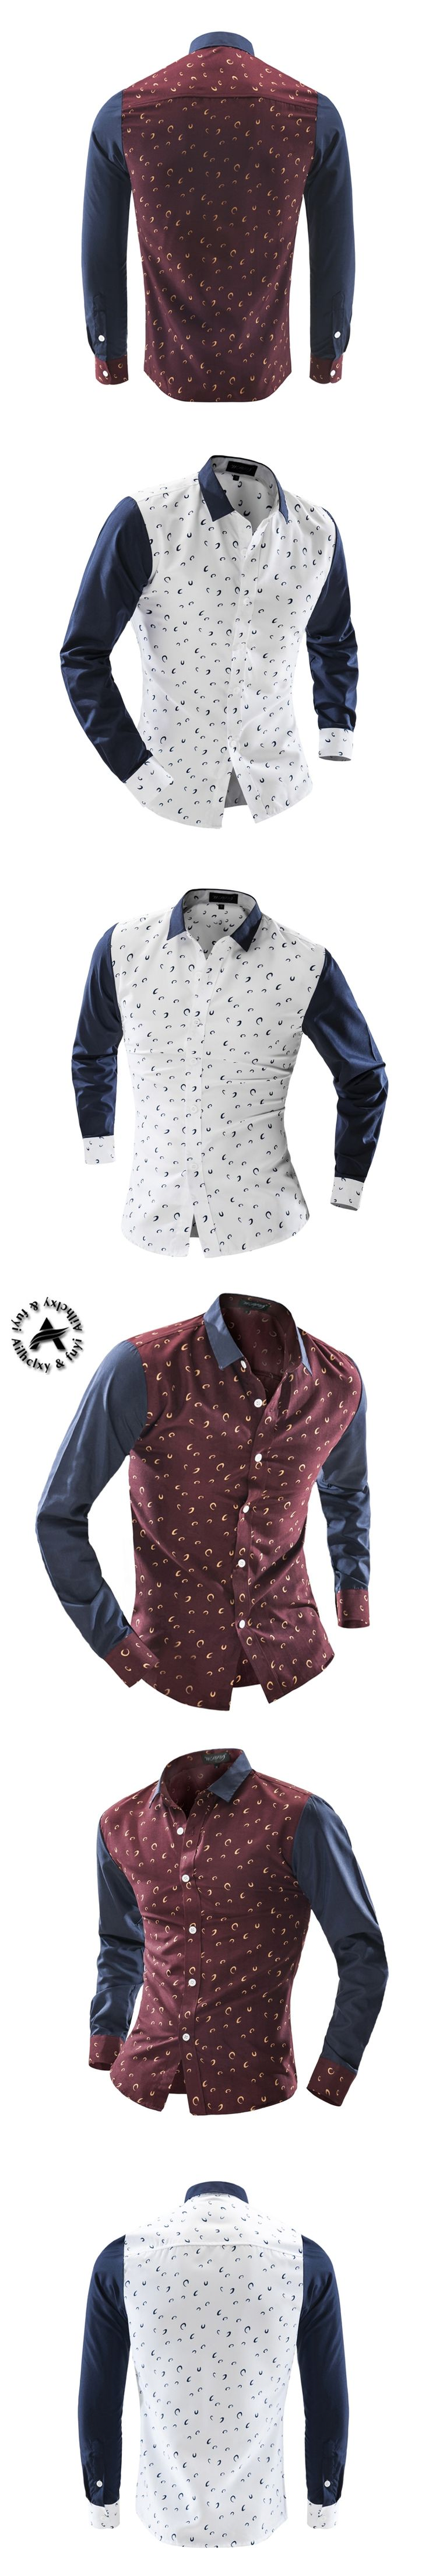 2016 New Casual Men'S Clothing Office Herren Hemden Slim Fit Shirt Fashion Floral Shirts Men Solids Camisa Hombre